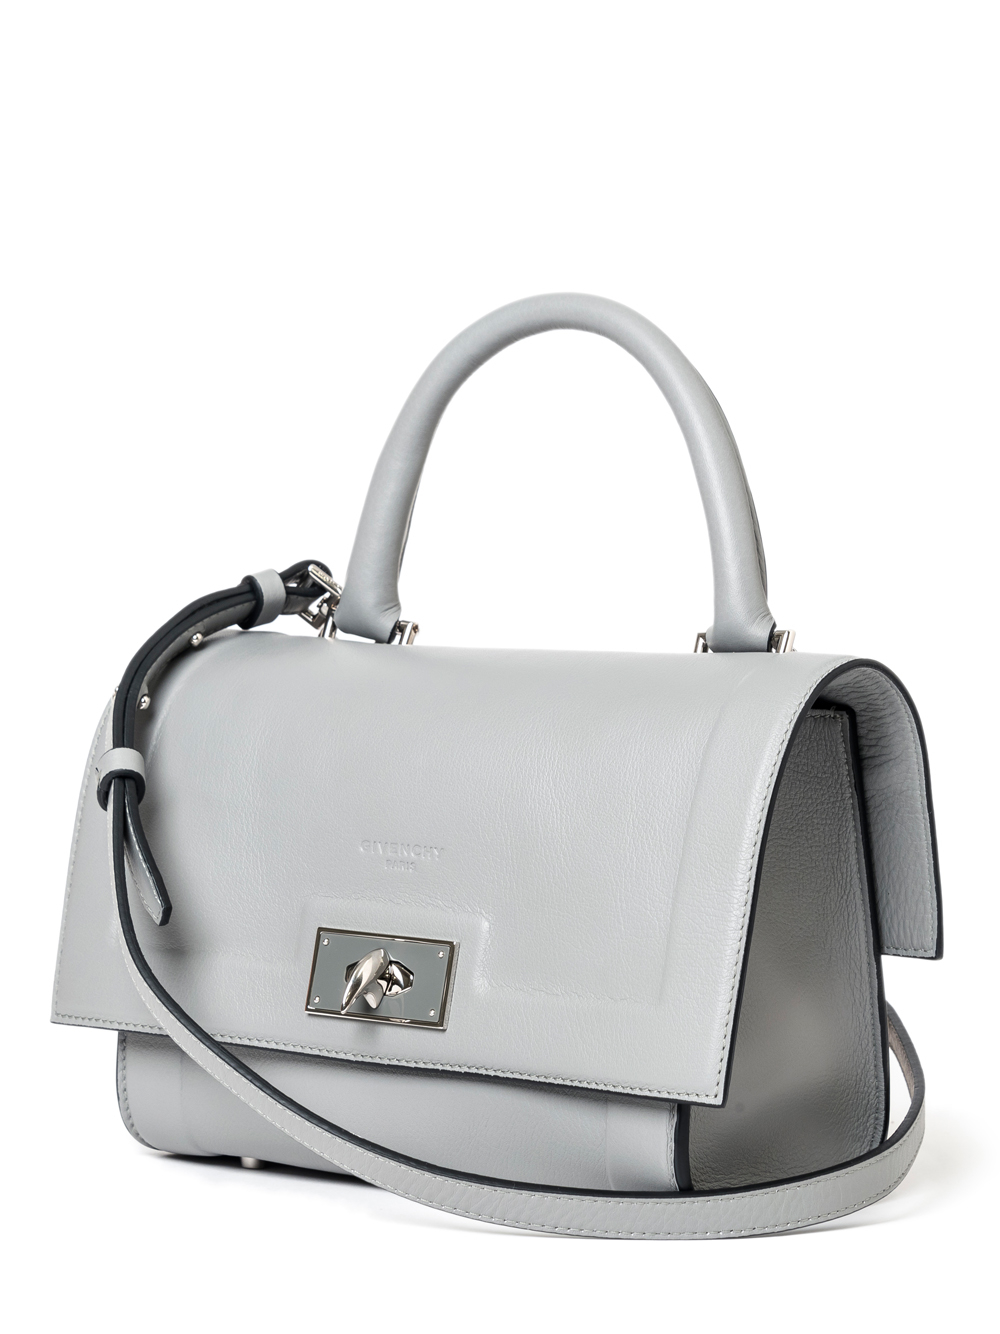 Lyst - Givenchy Mini Shark Bag in Gray c7c686fe077c6